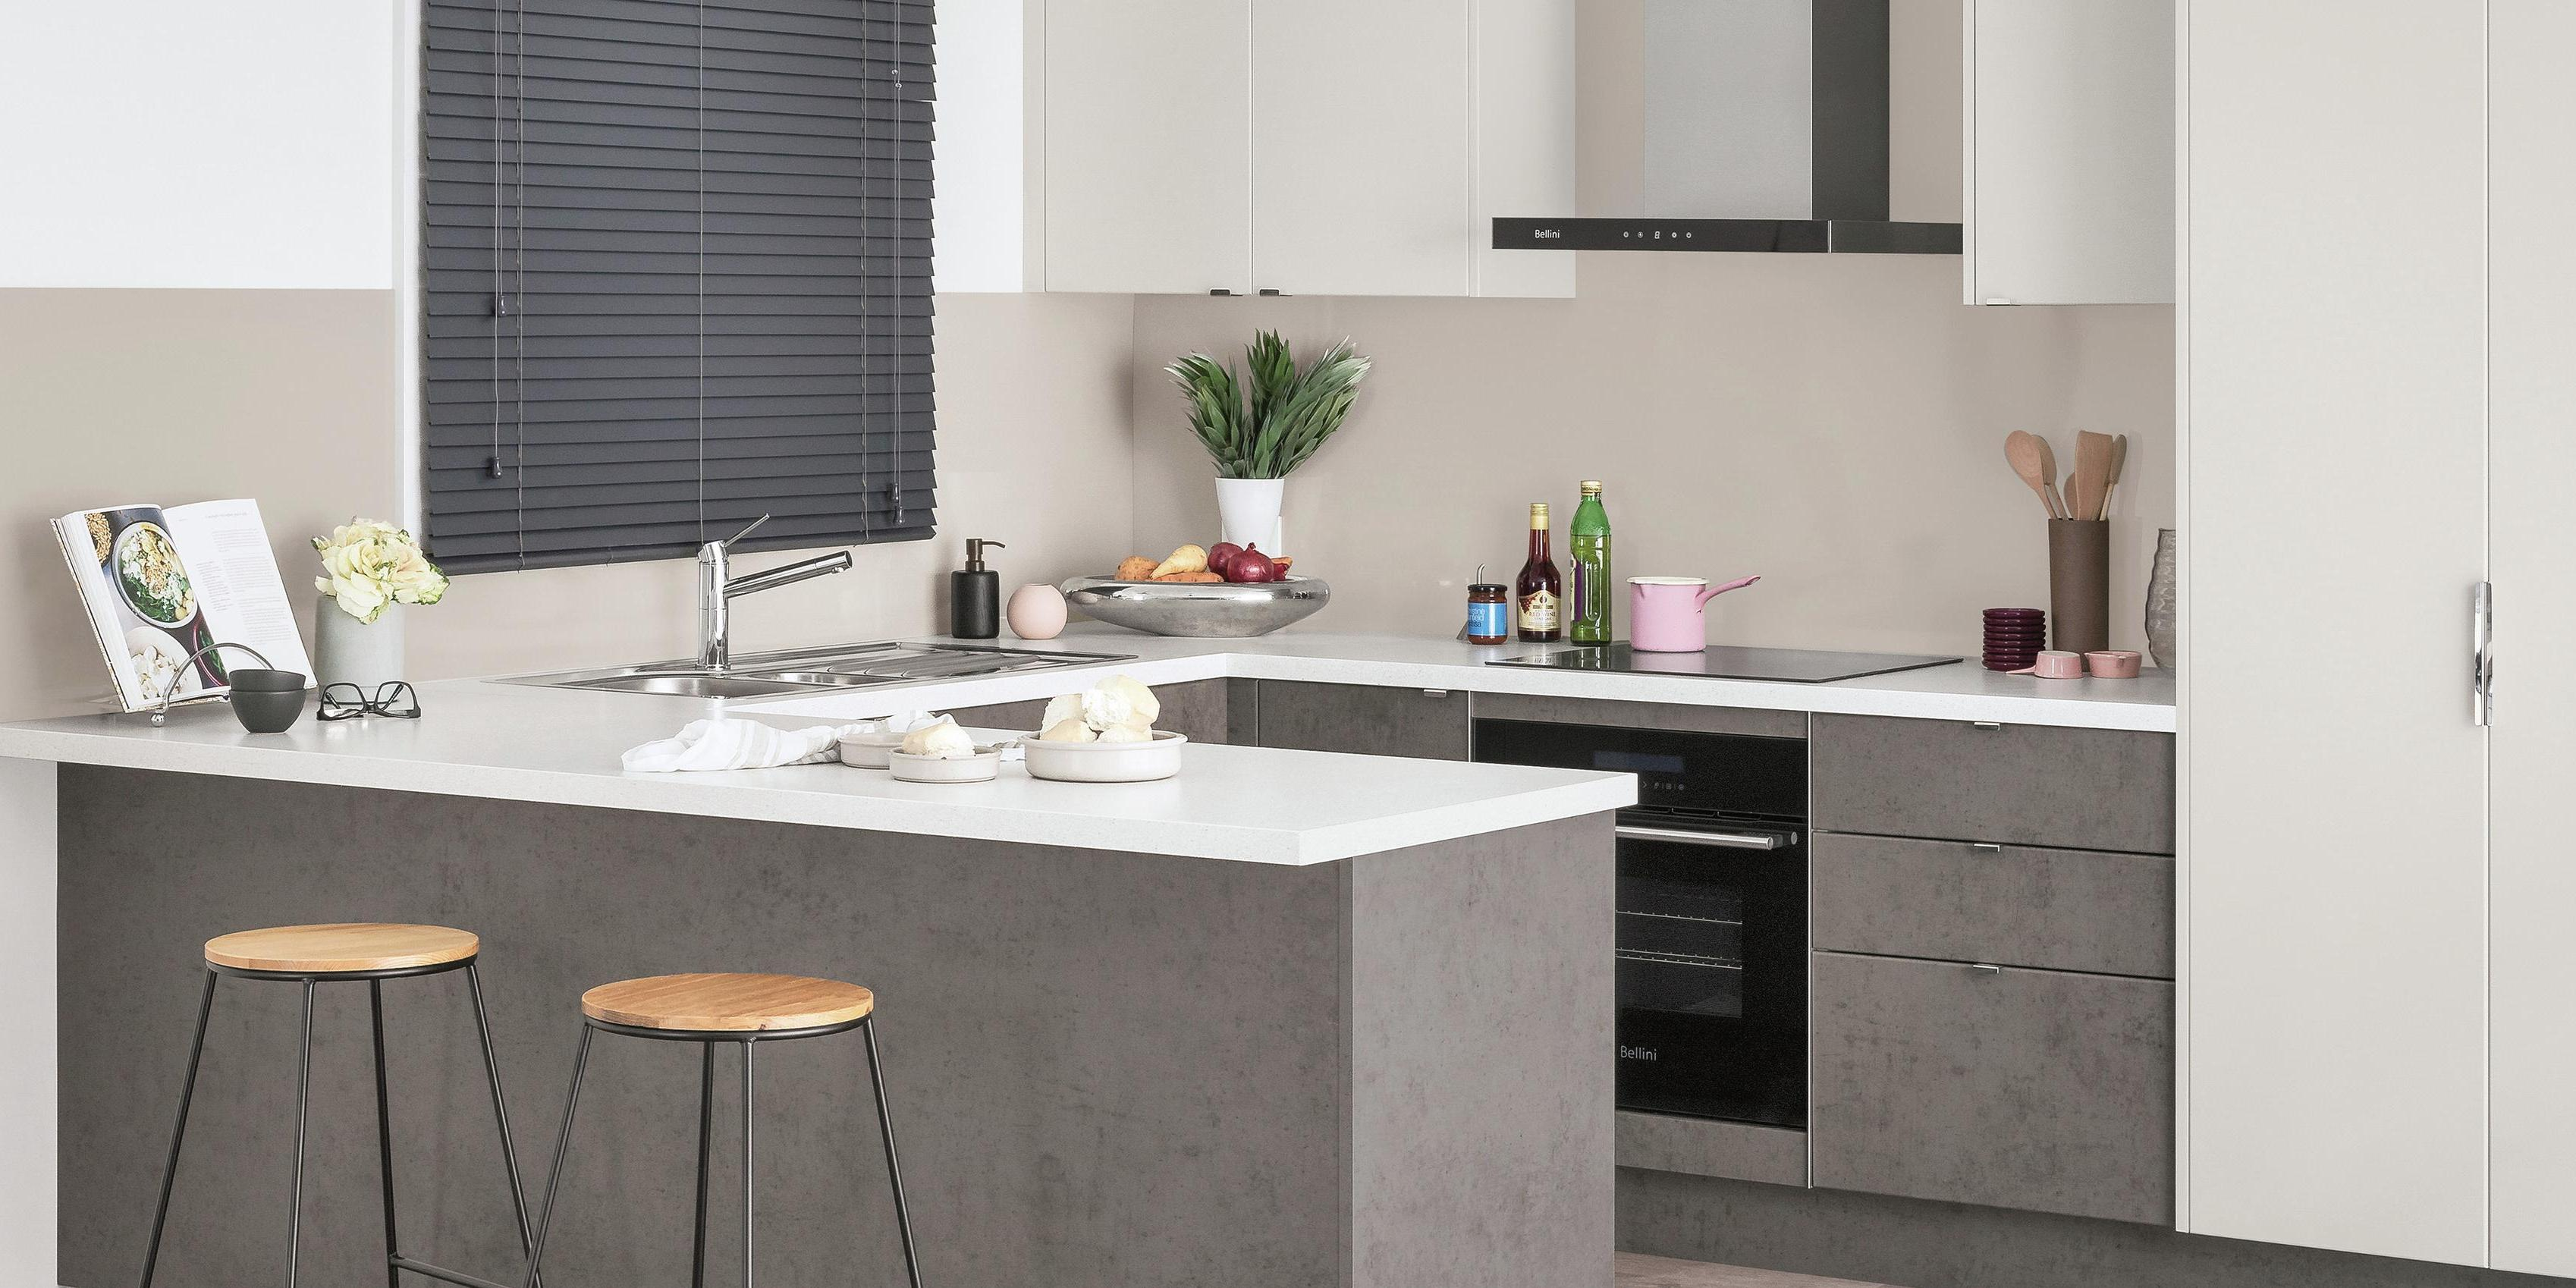 Kitchen with U-shaped kitchen benchtops, stainless steel sink and two stools